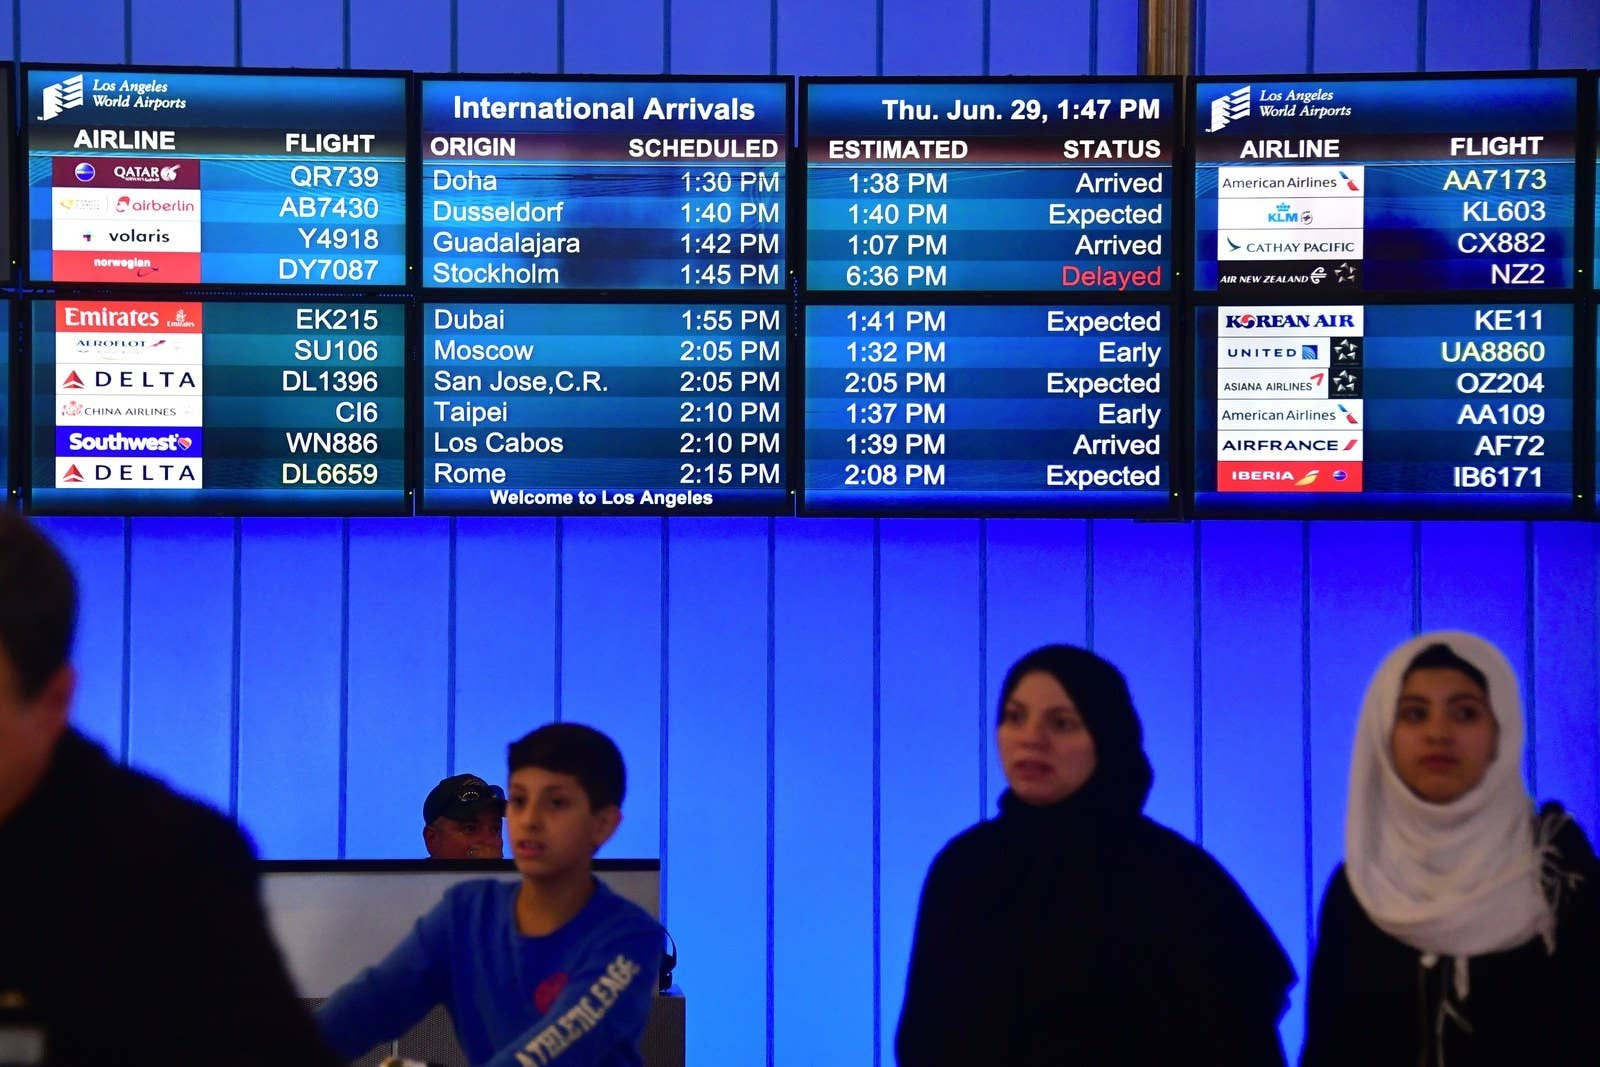 Travelers from the Middle East exit the international arrivals section at Los Angeles International Airport.